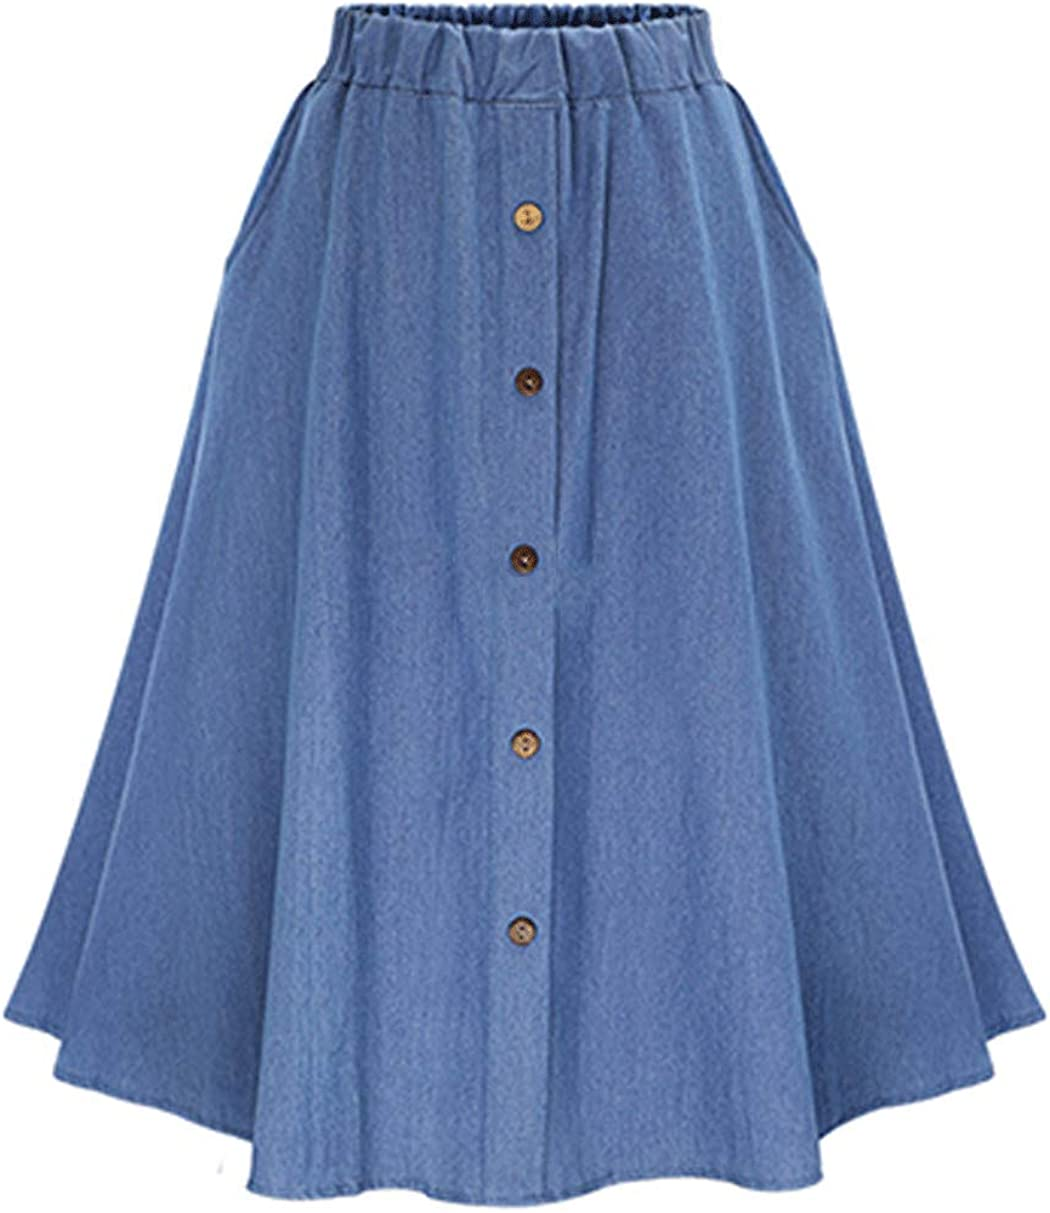 CHARTOU Womens Stretchy High Waist 5-Buttons Front A-Line Flowy Midi Skirts